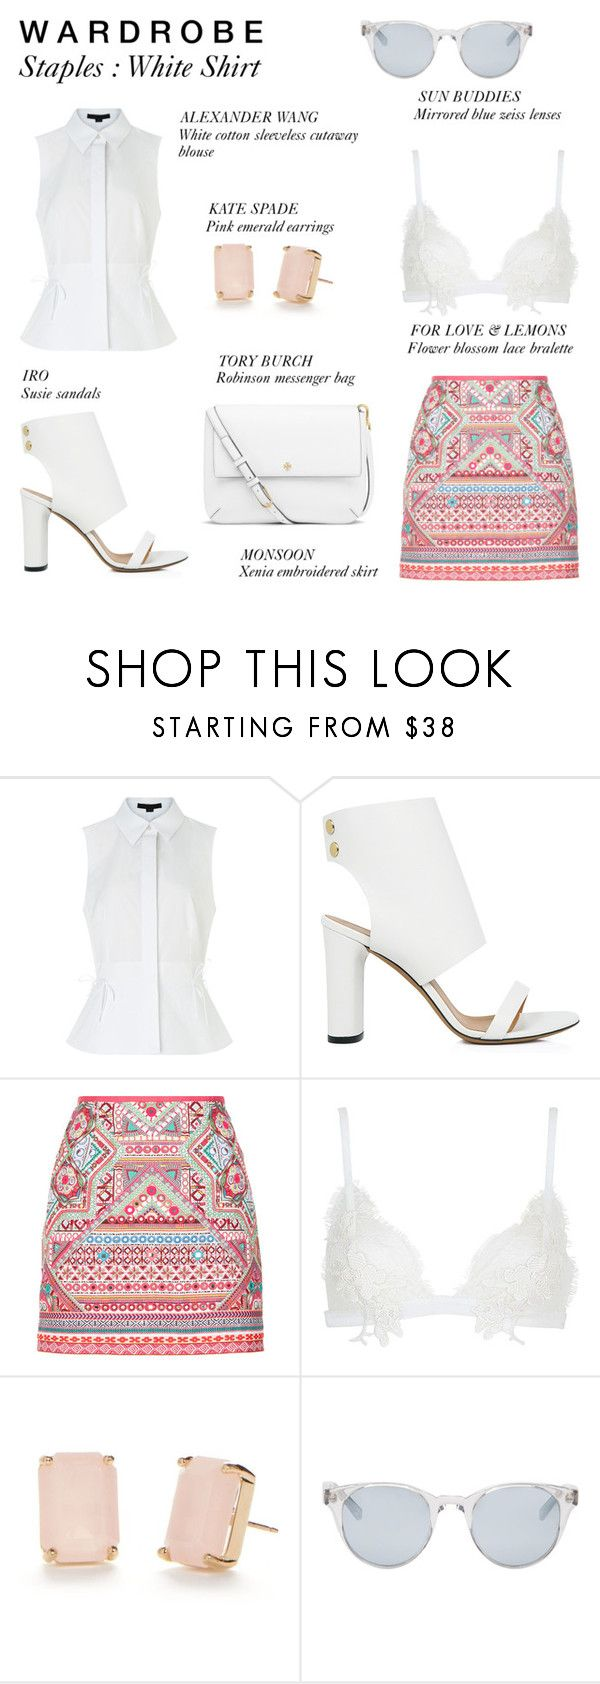 """""""Wardrobe Staples : White Shirt '16"""" by rachaelselina ❤ liked on Polyvore featuring Alexander Wang, IRO, Accessorize, For Love & Lemons, Kate Spade, Sun Buddies and Tory Burch"""